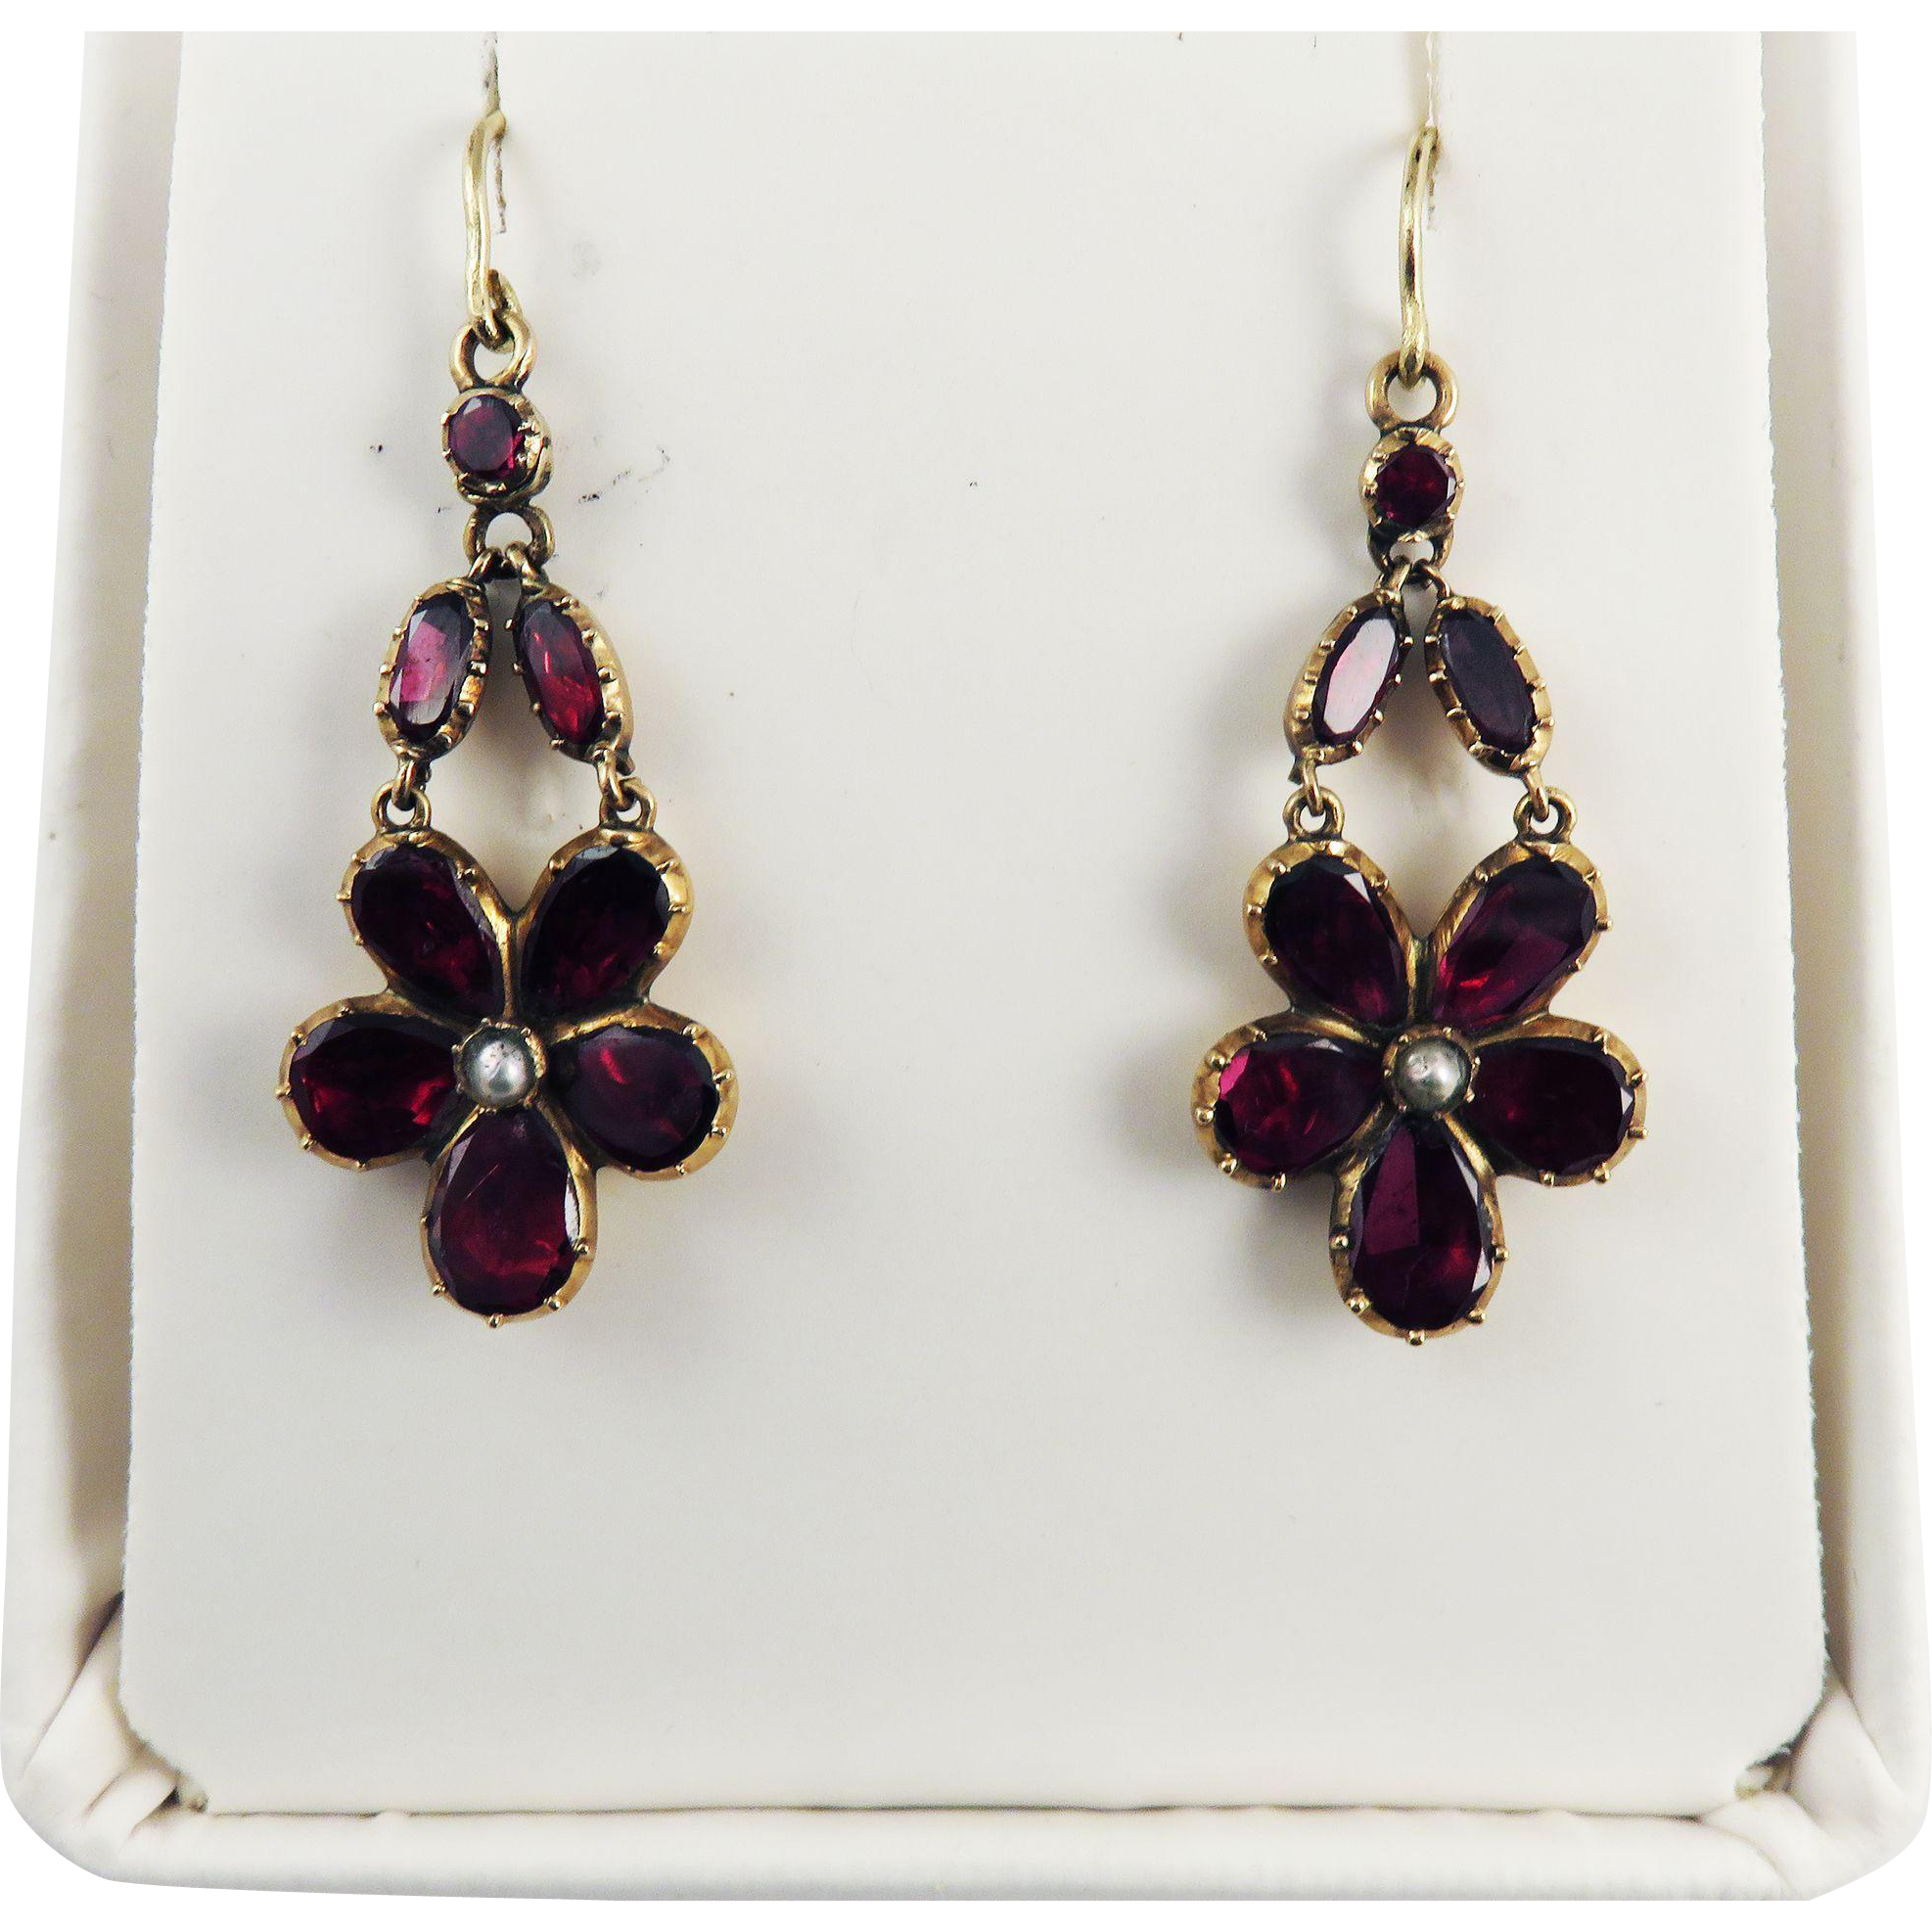 "AMAZING 1 3/4"" Georgian Garnet/Pearl/9k Pansy-Motif Drop Earrings, c.1810!"